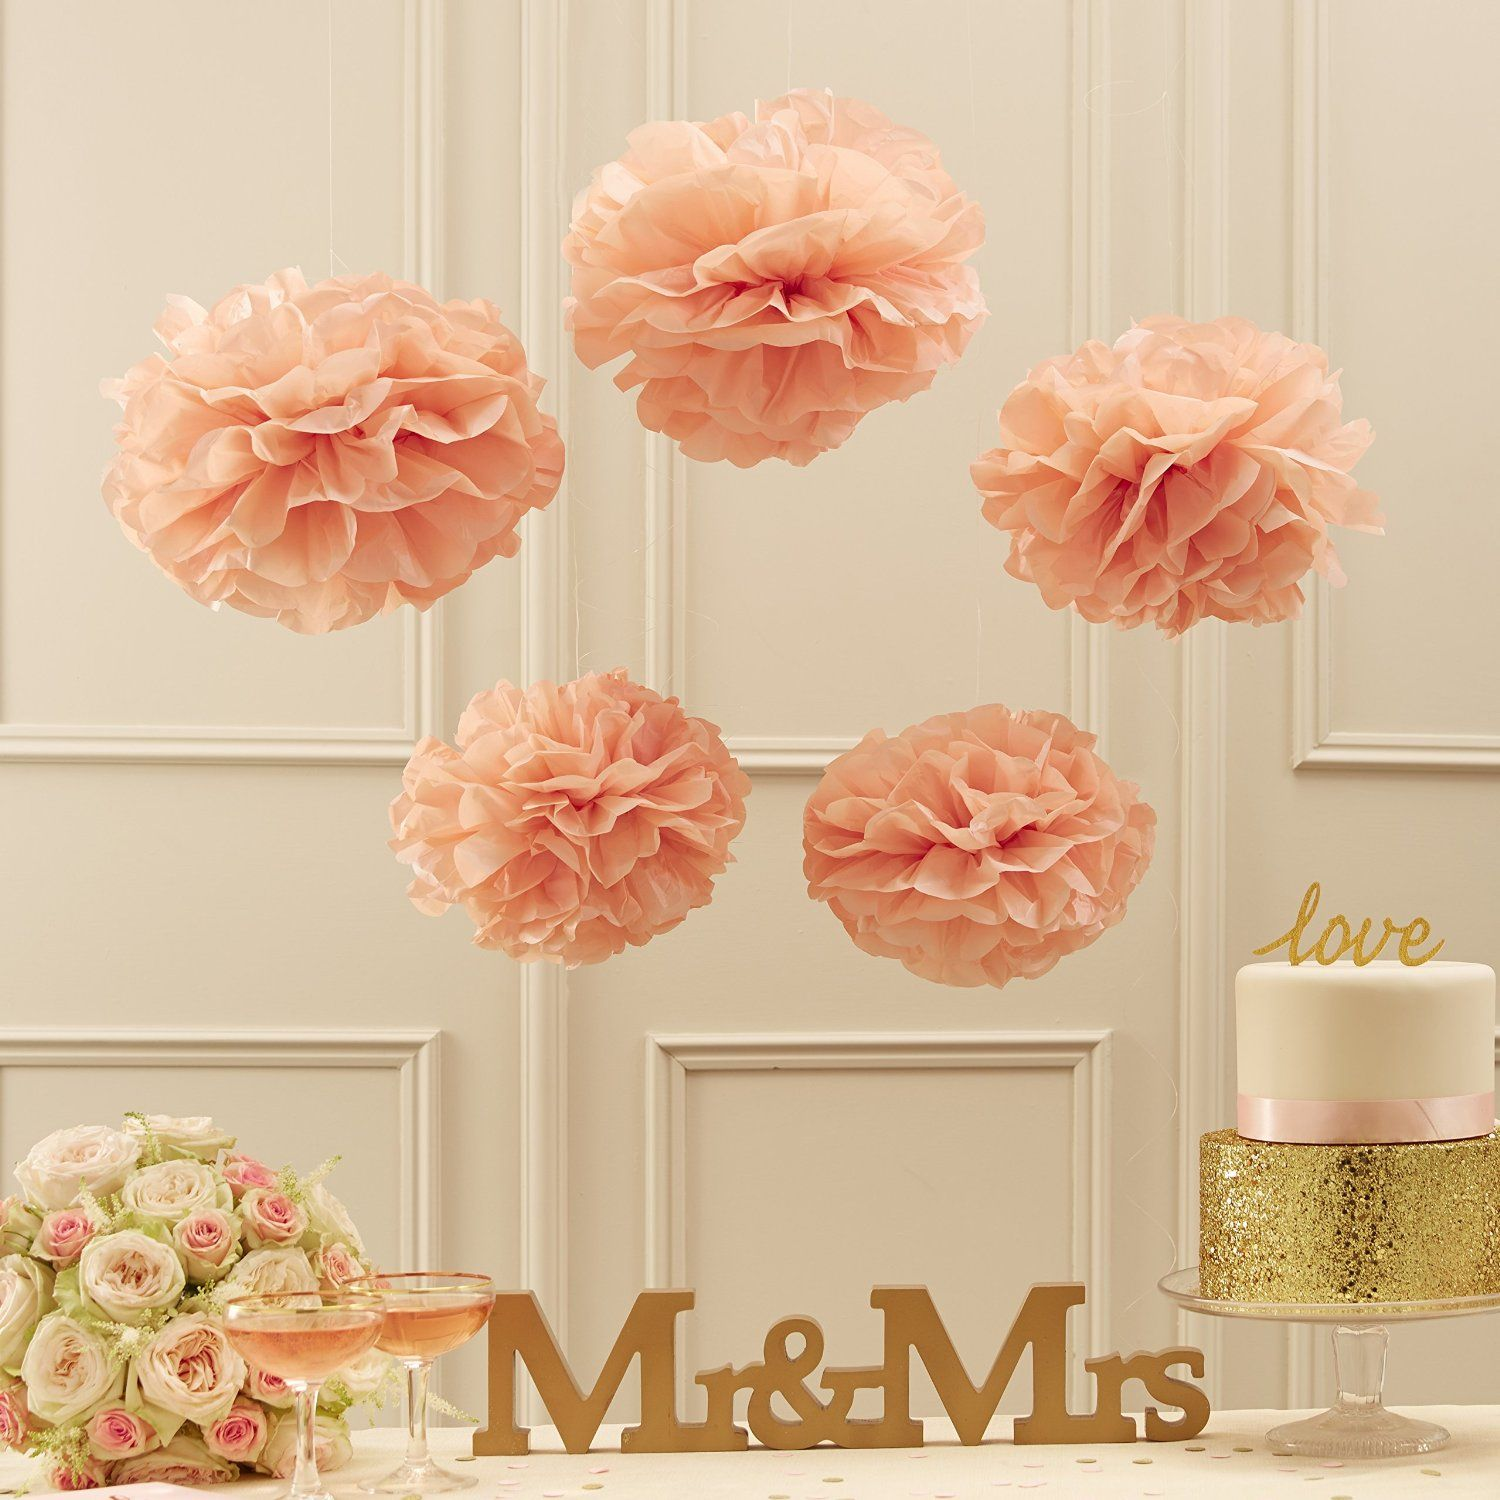 Ginger Ray Pastell Rosa Seidenpapier Pom Poms Party & Hochzeit Dekorationen In Pastellfarben Perfektion